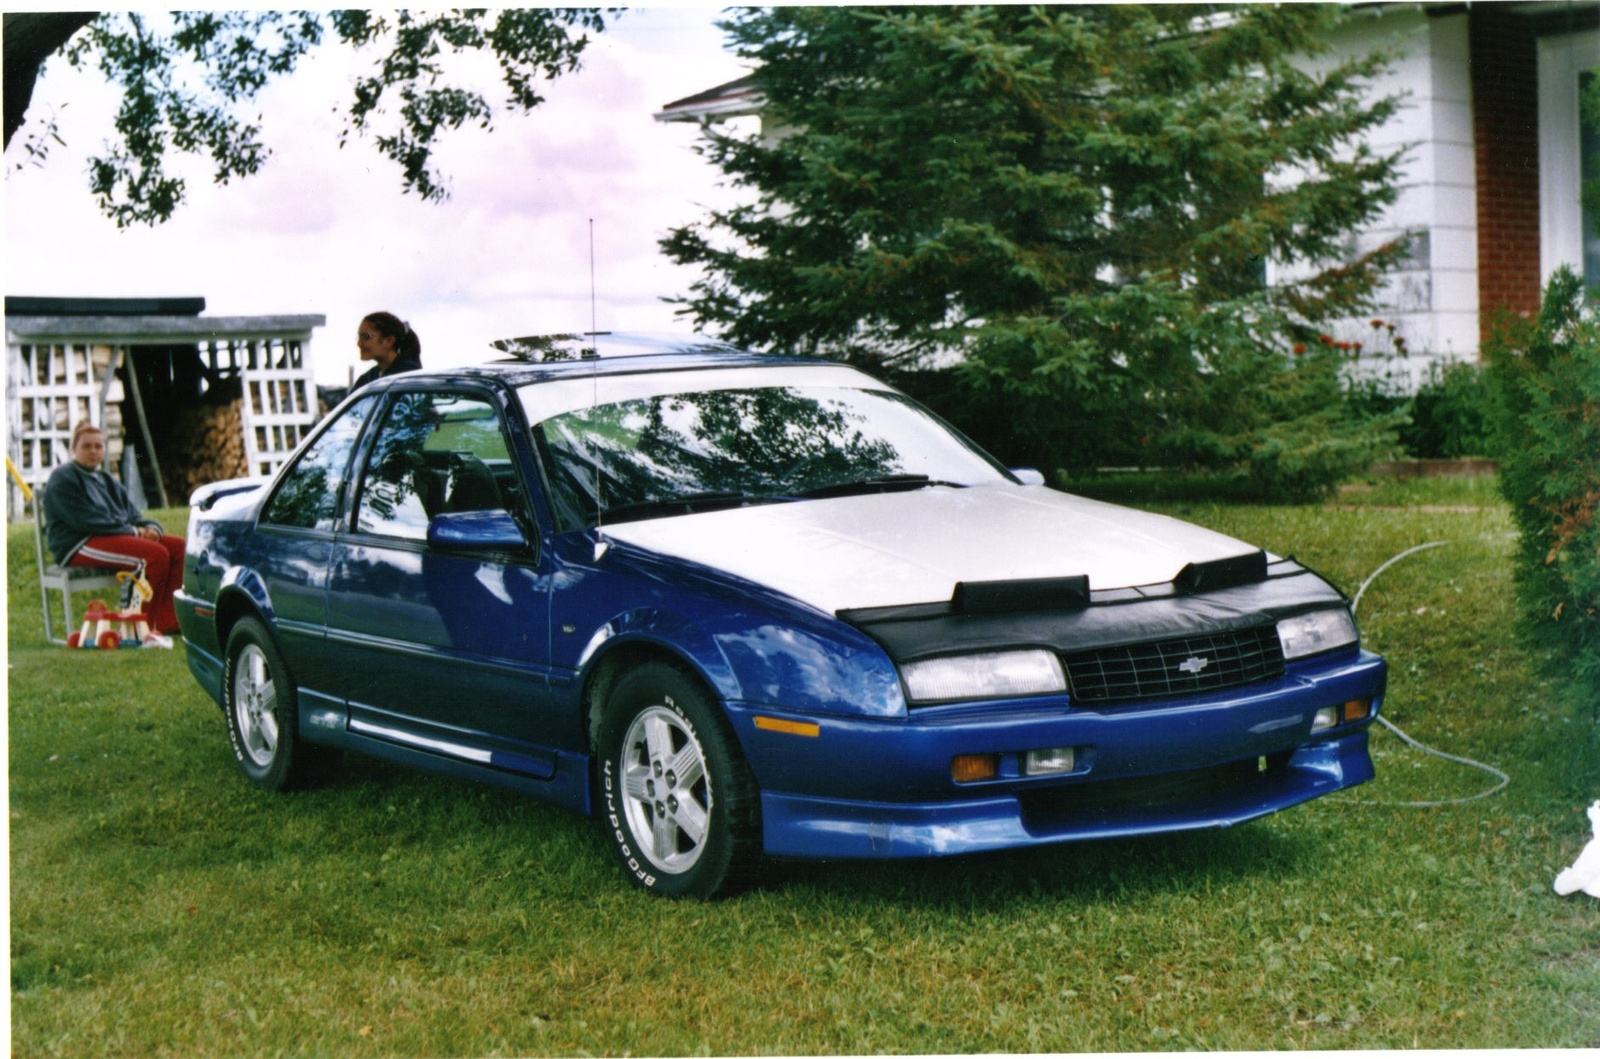 All Chevy 95 chevy beretta : Chevrolet Beretta - Pictures, posters, news and videos on your ...